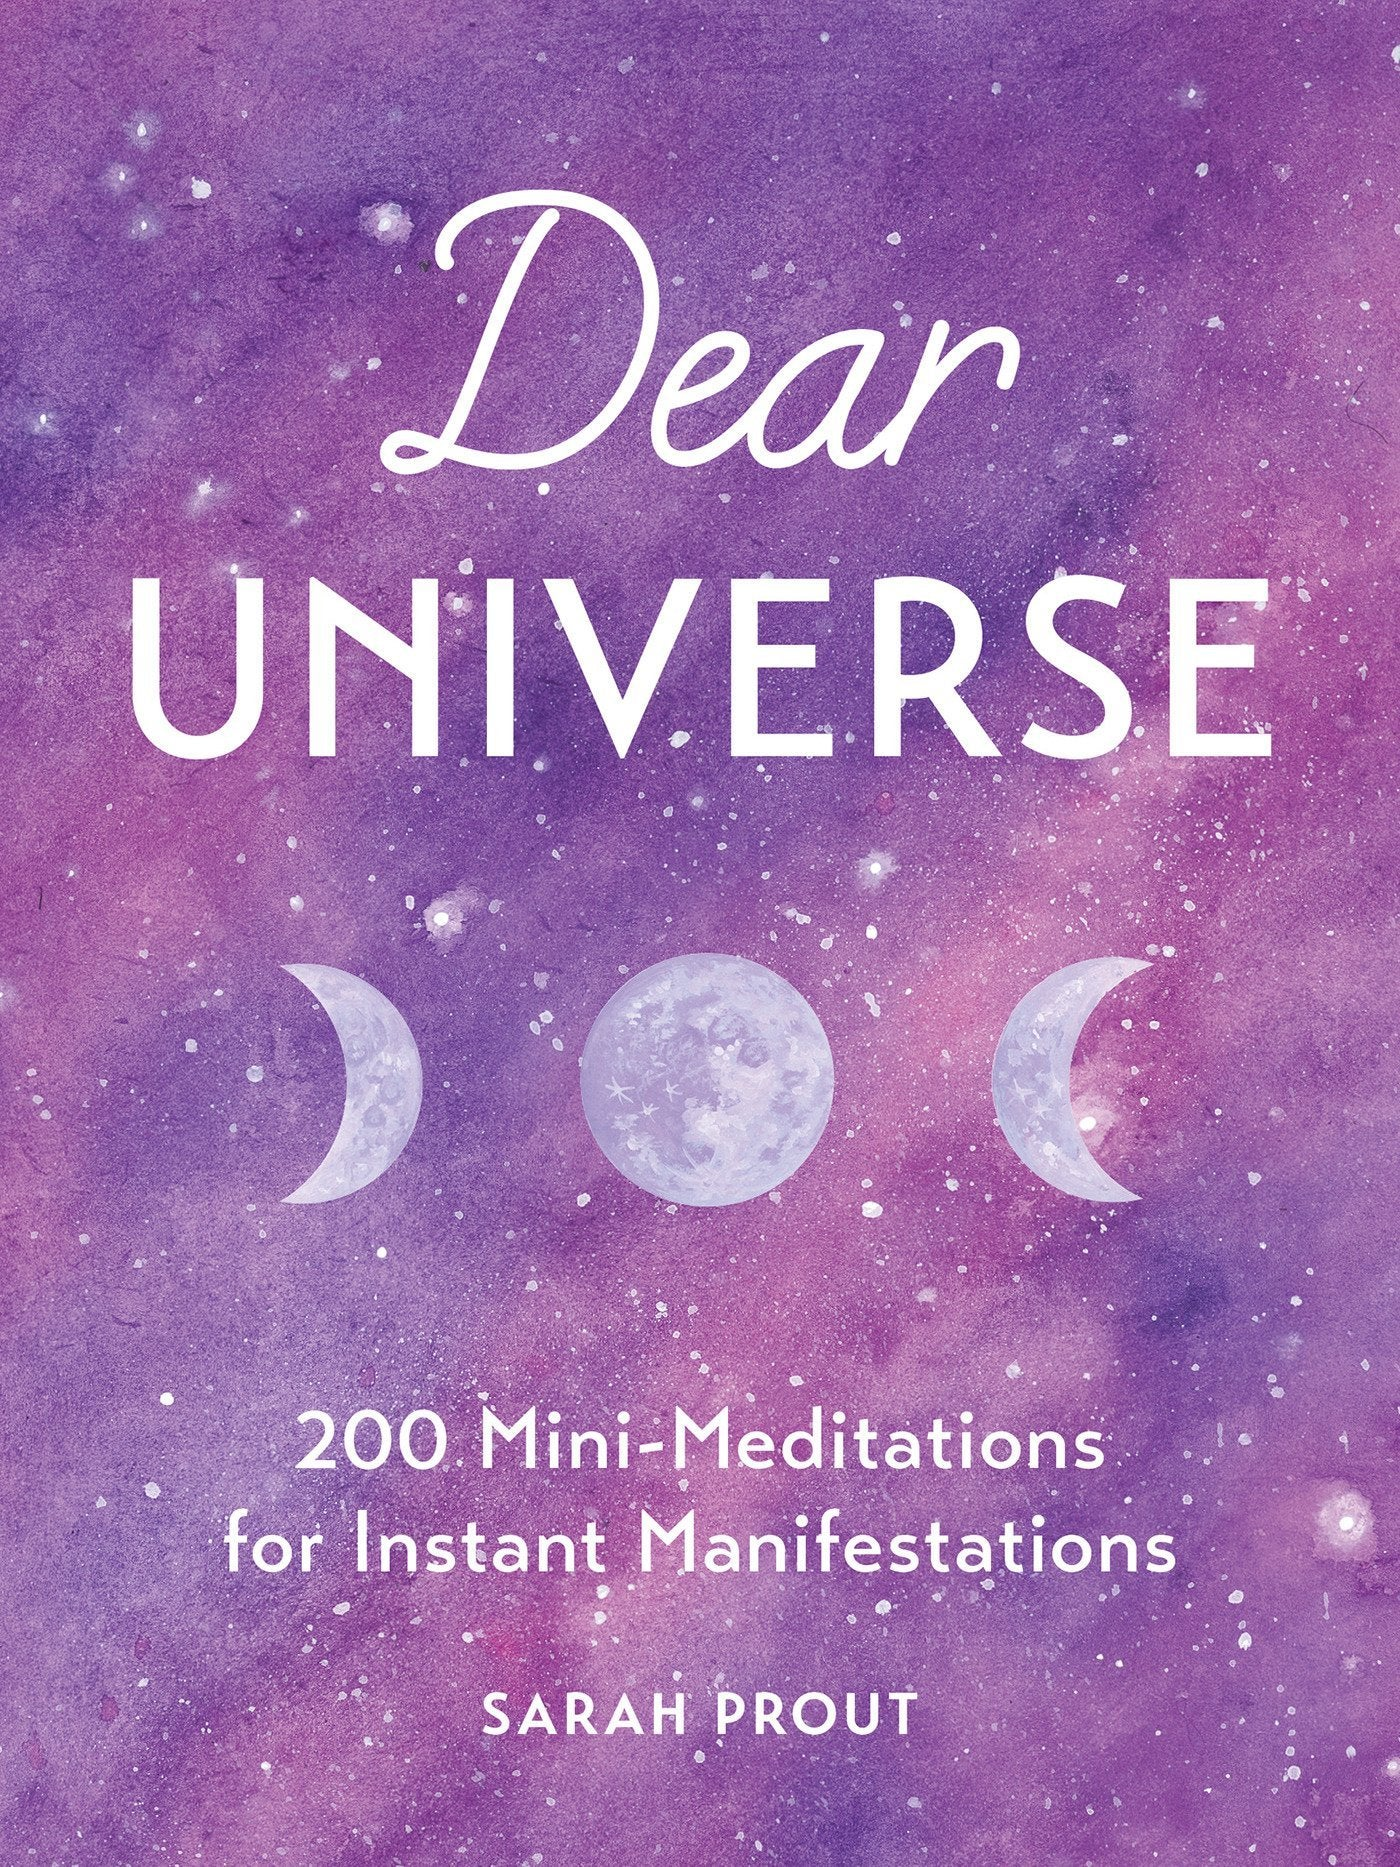 Dear Universe by Sarah Prout